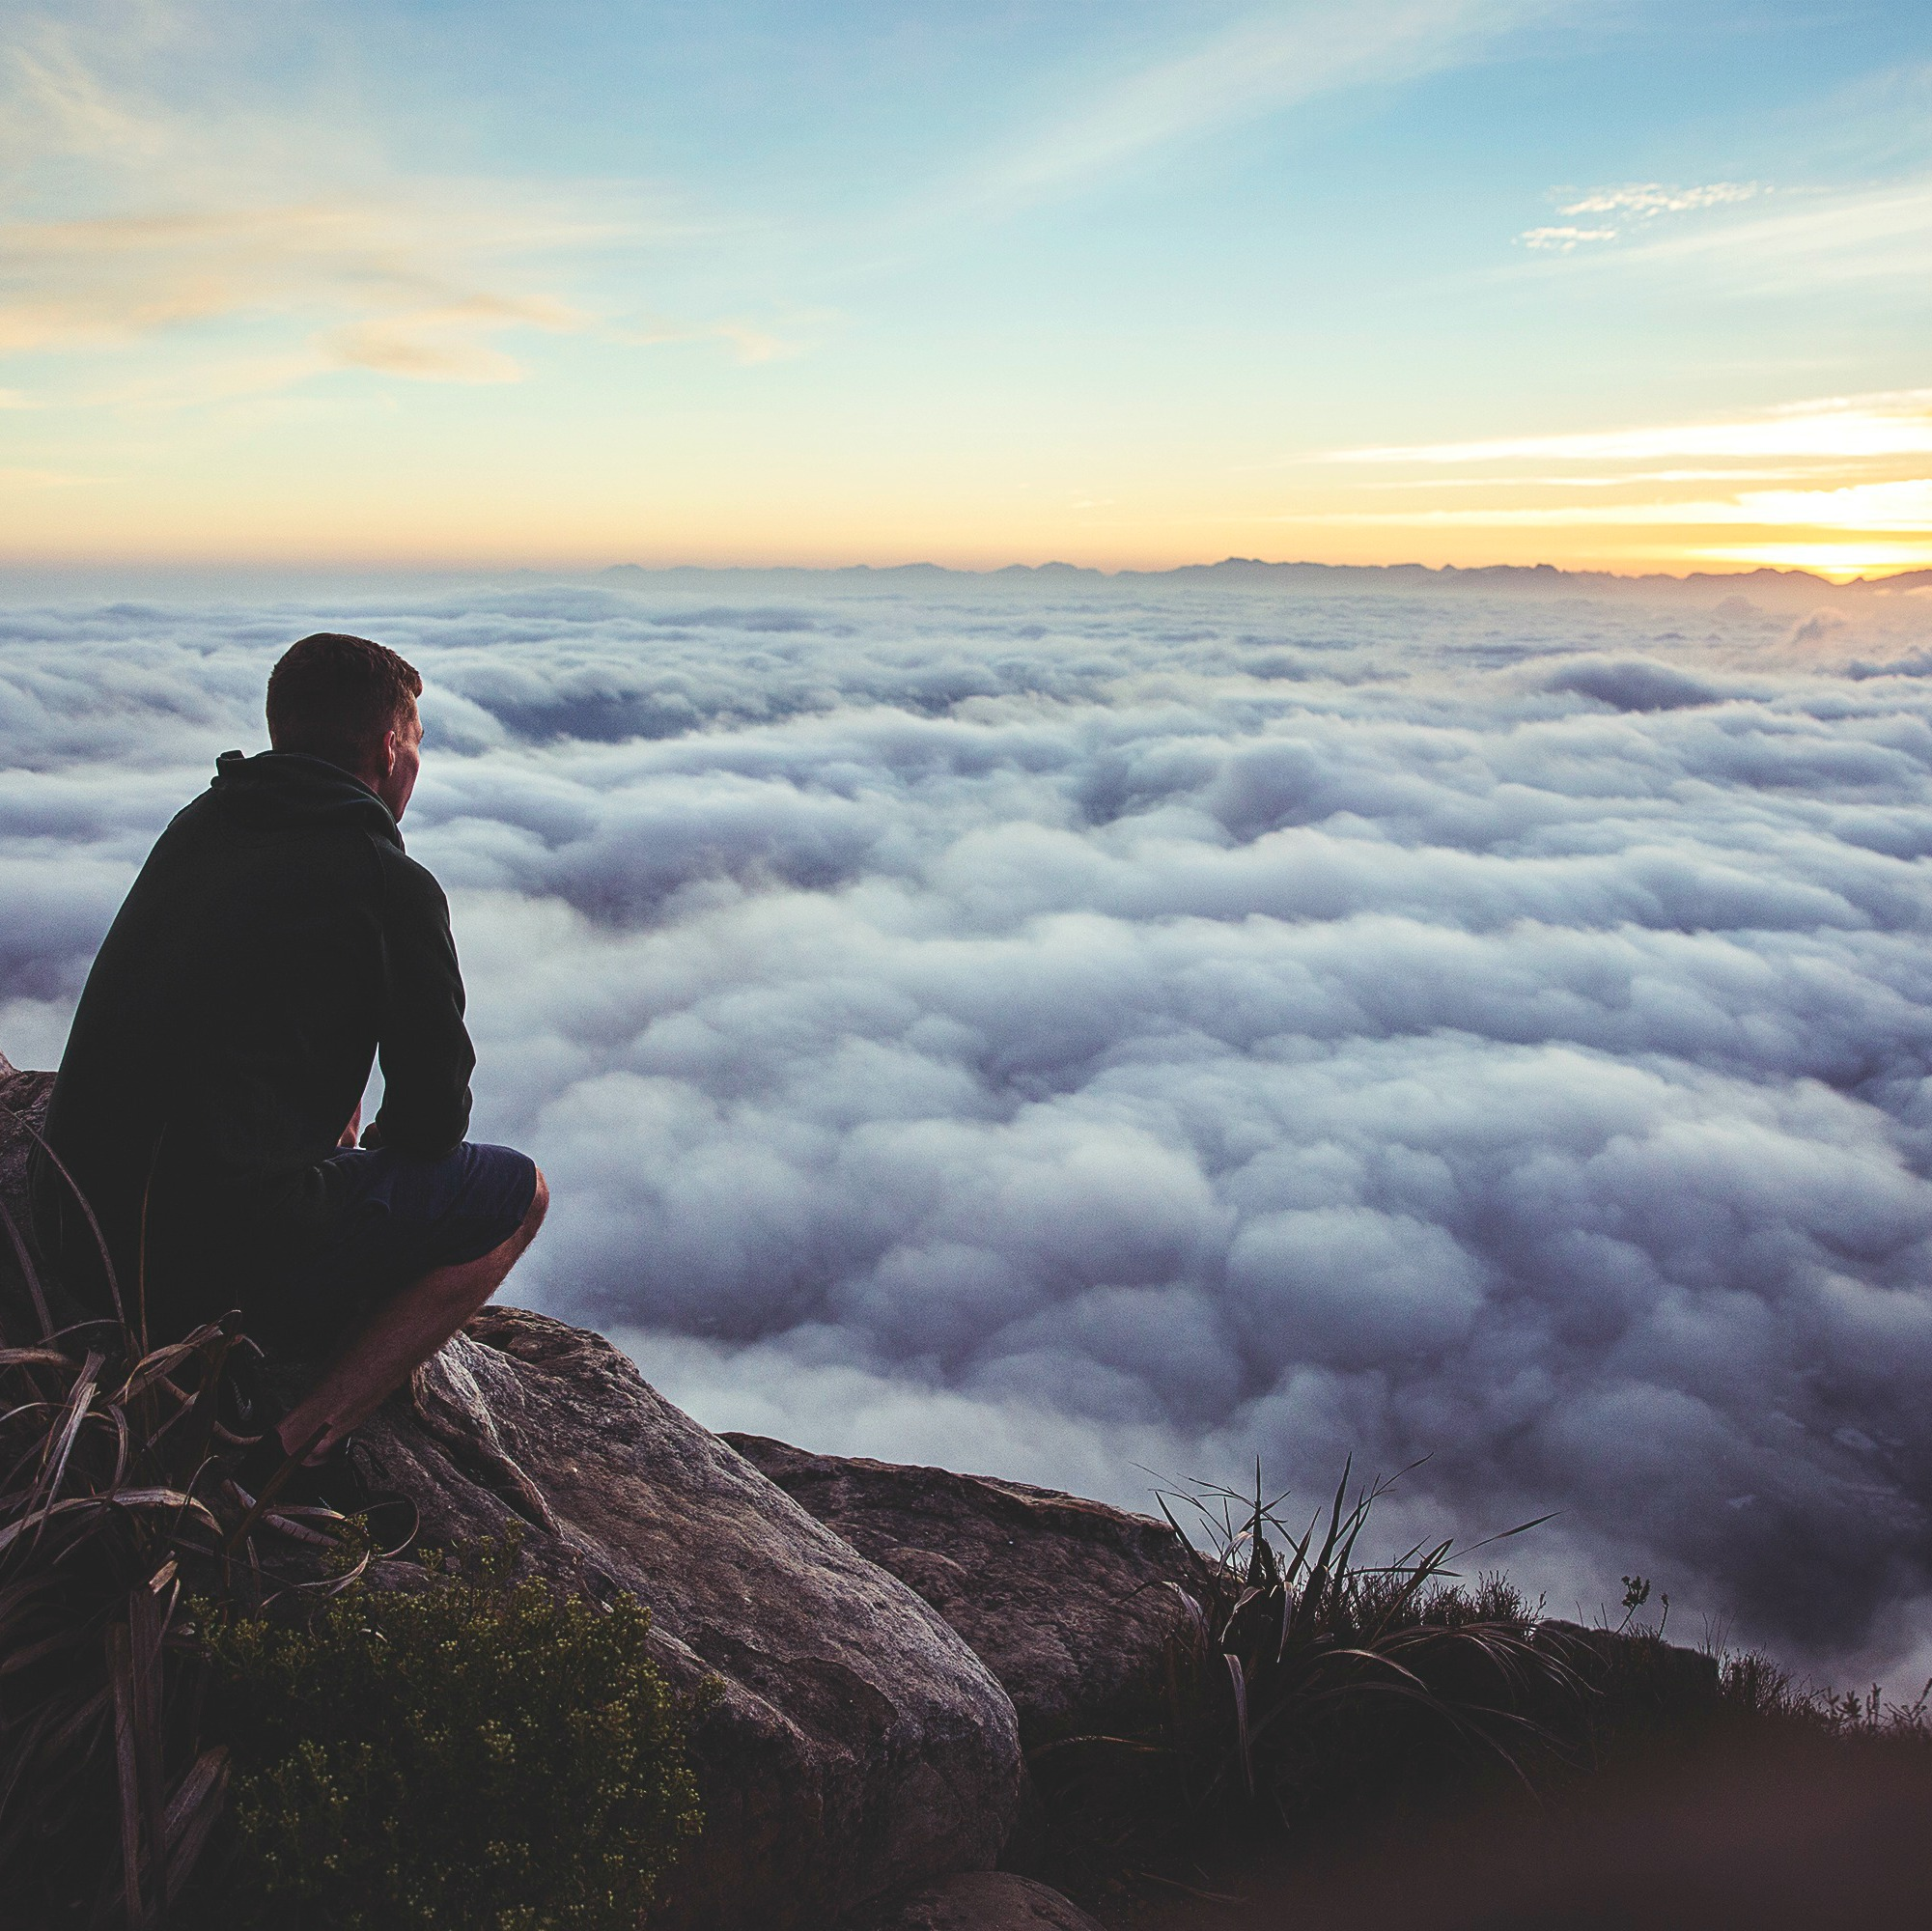 A Mind Captivated by God